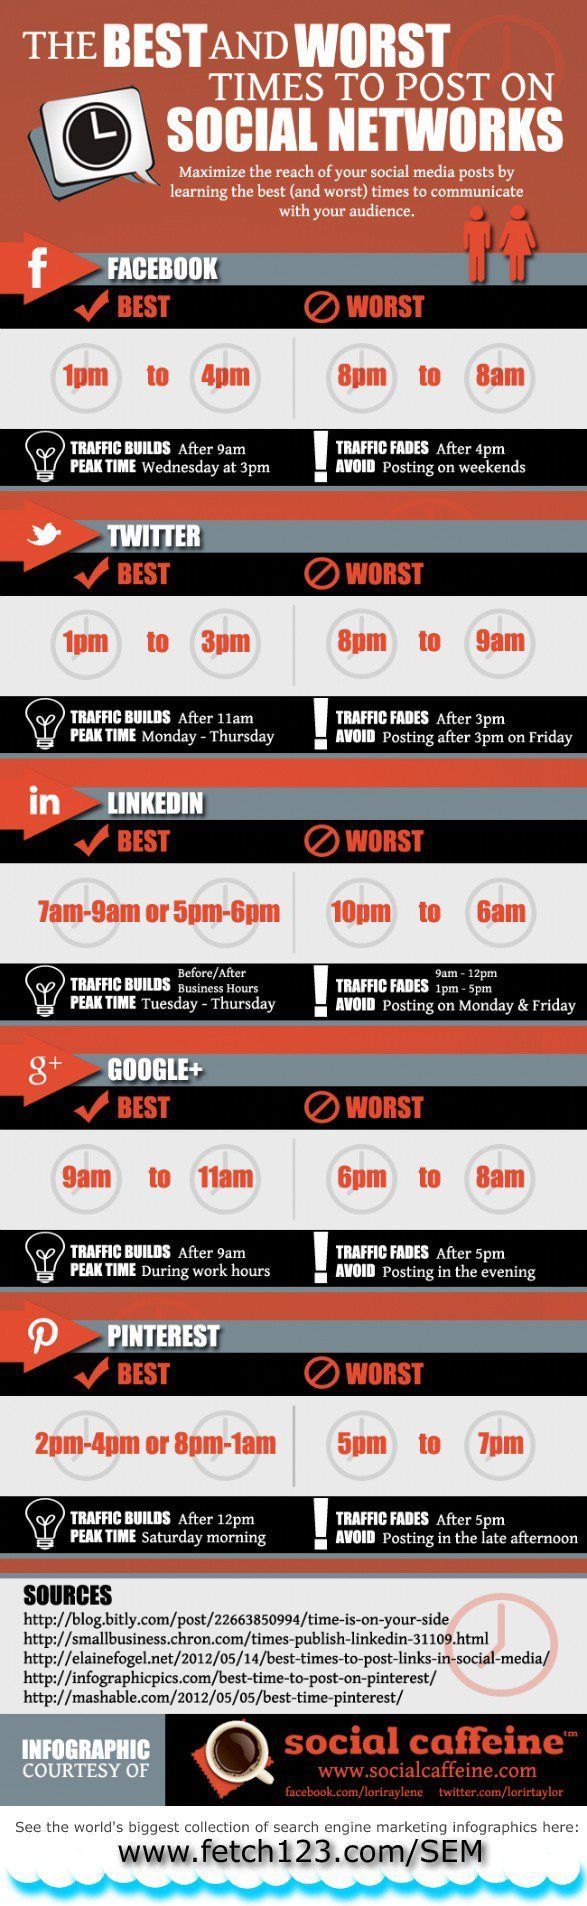 Best & worst times to post on social networks. Follow us on Twitter @Relay For Life of Vinings - Buckhead, GA and Like us on http://facebook.com/RelayForLifeOfViningsBuckheadGA Get involved or make a tax-deductible donation>> https://RelayForLife.org/ViningsBuckheadGA